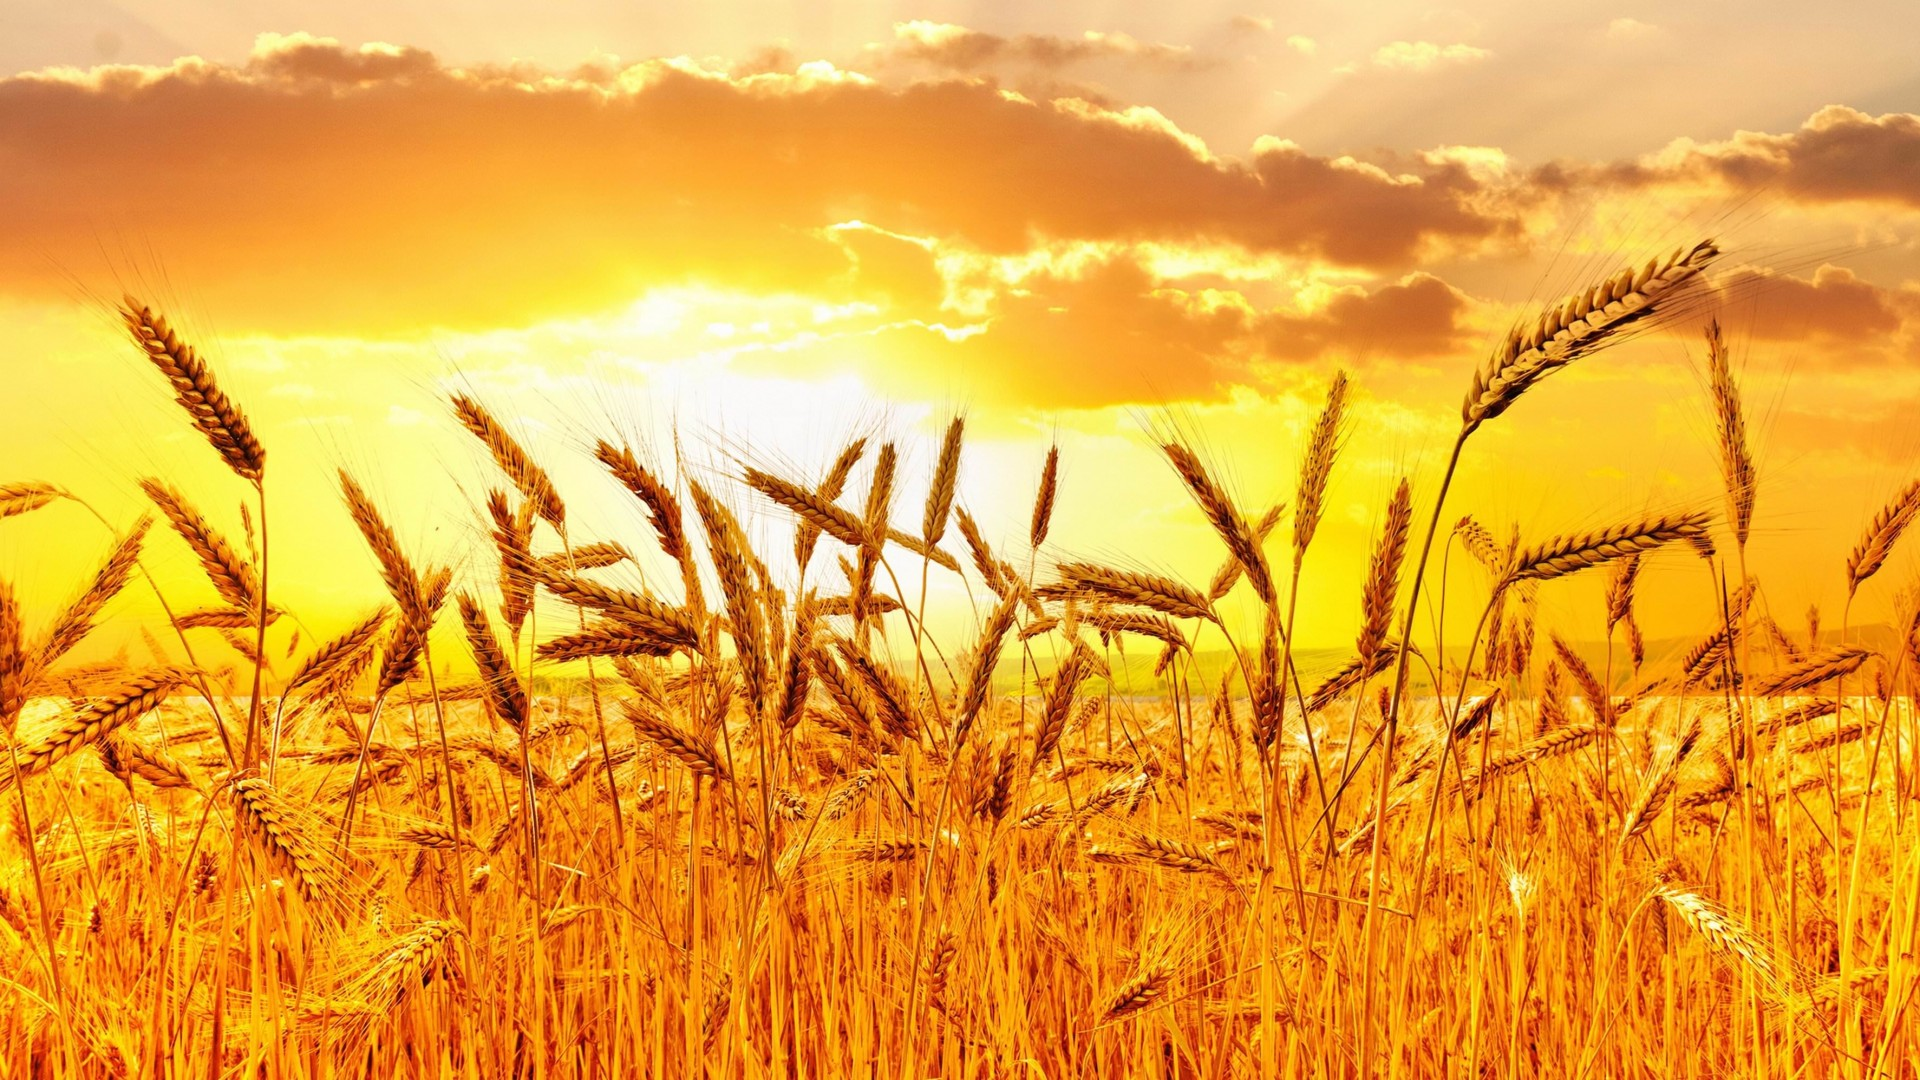 Golden Wheat Field At Sunset Wallpaper for Desktop 1920x1080